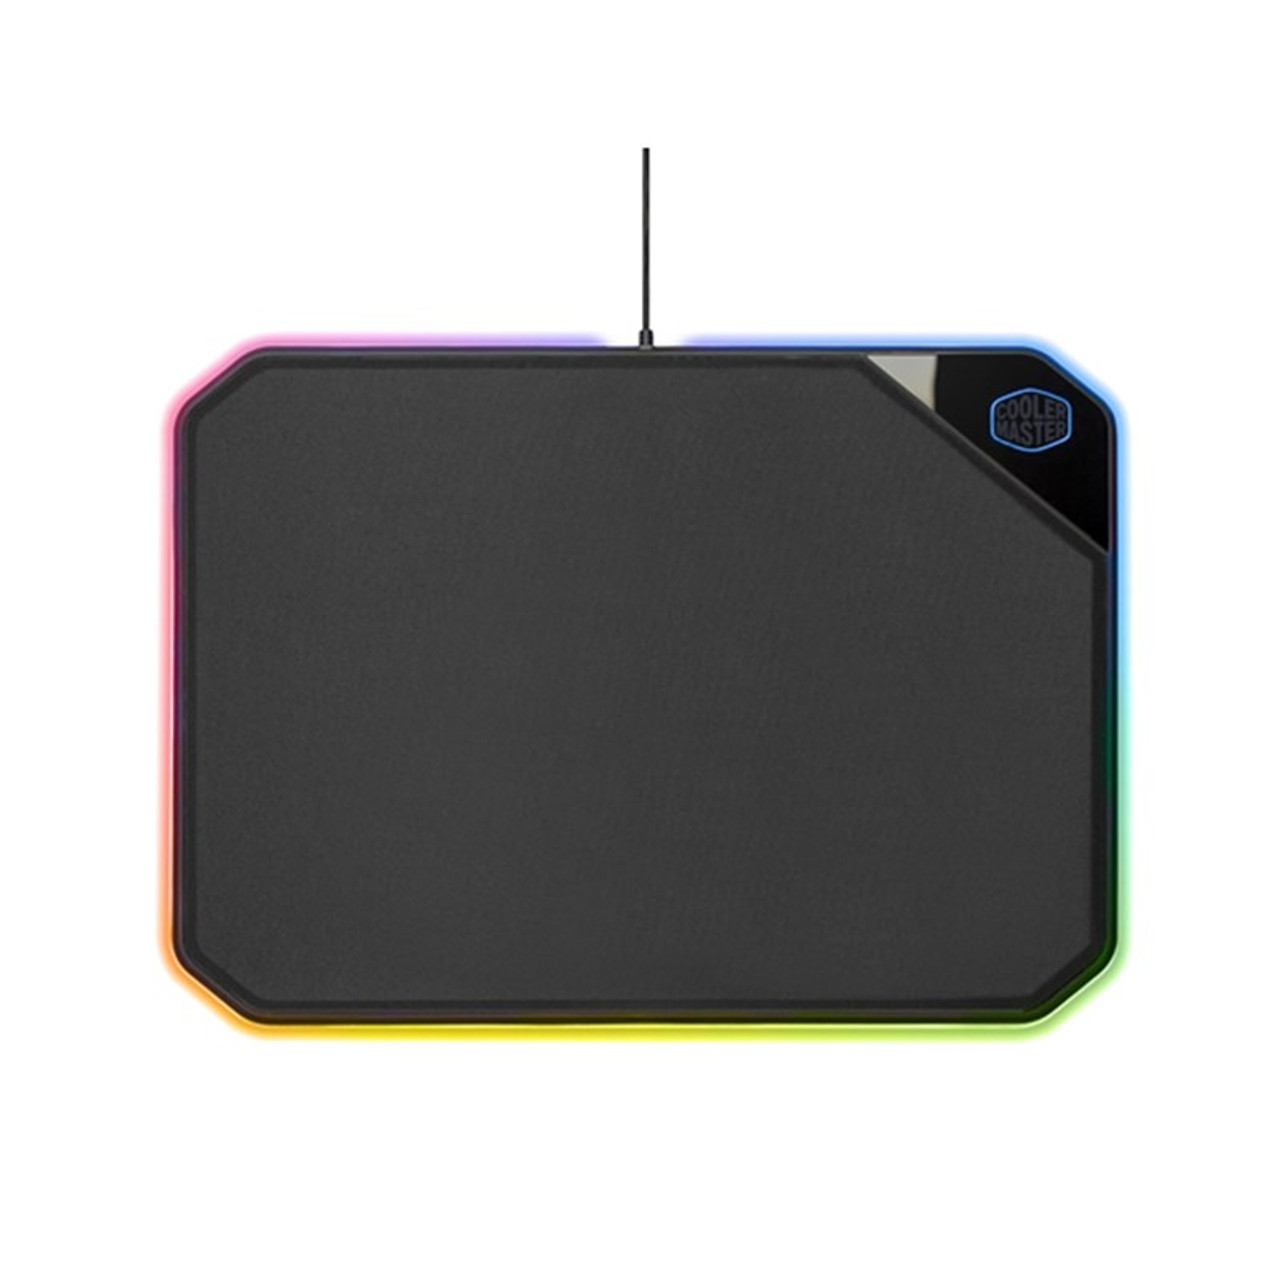 Image for Cooler Master MP860 RGB Hard Gaming Mouse Pad CX Computer Superstore